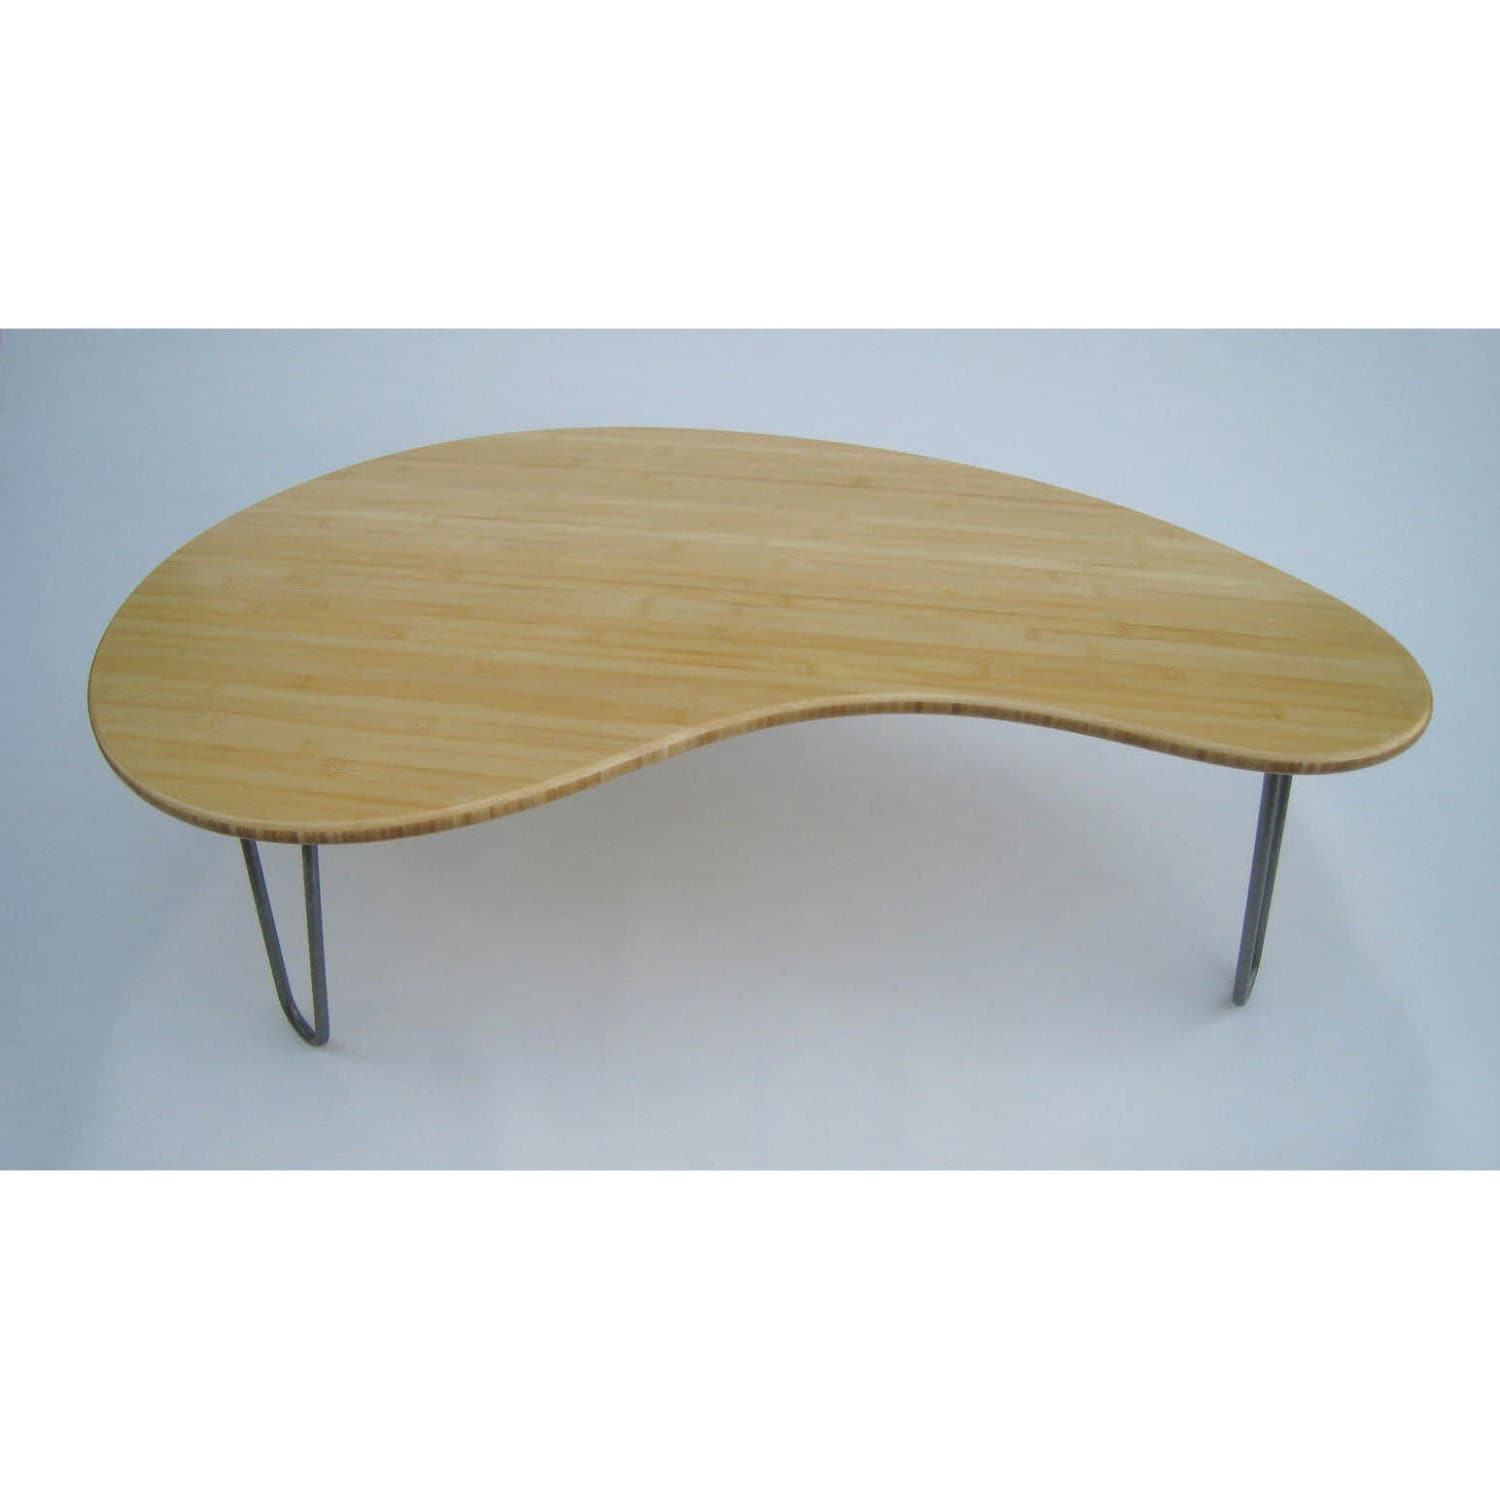 Mid Century Modern Coffee Table Kidney Bean Shaped Amorphic Etsy